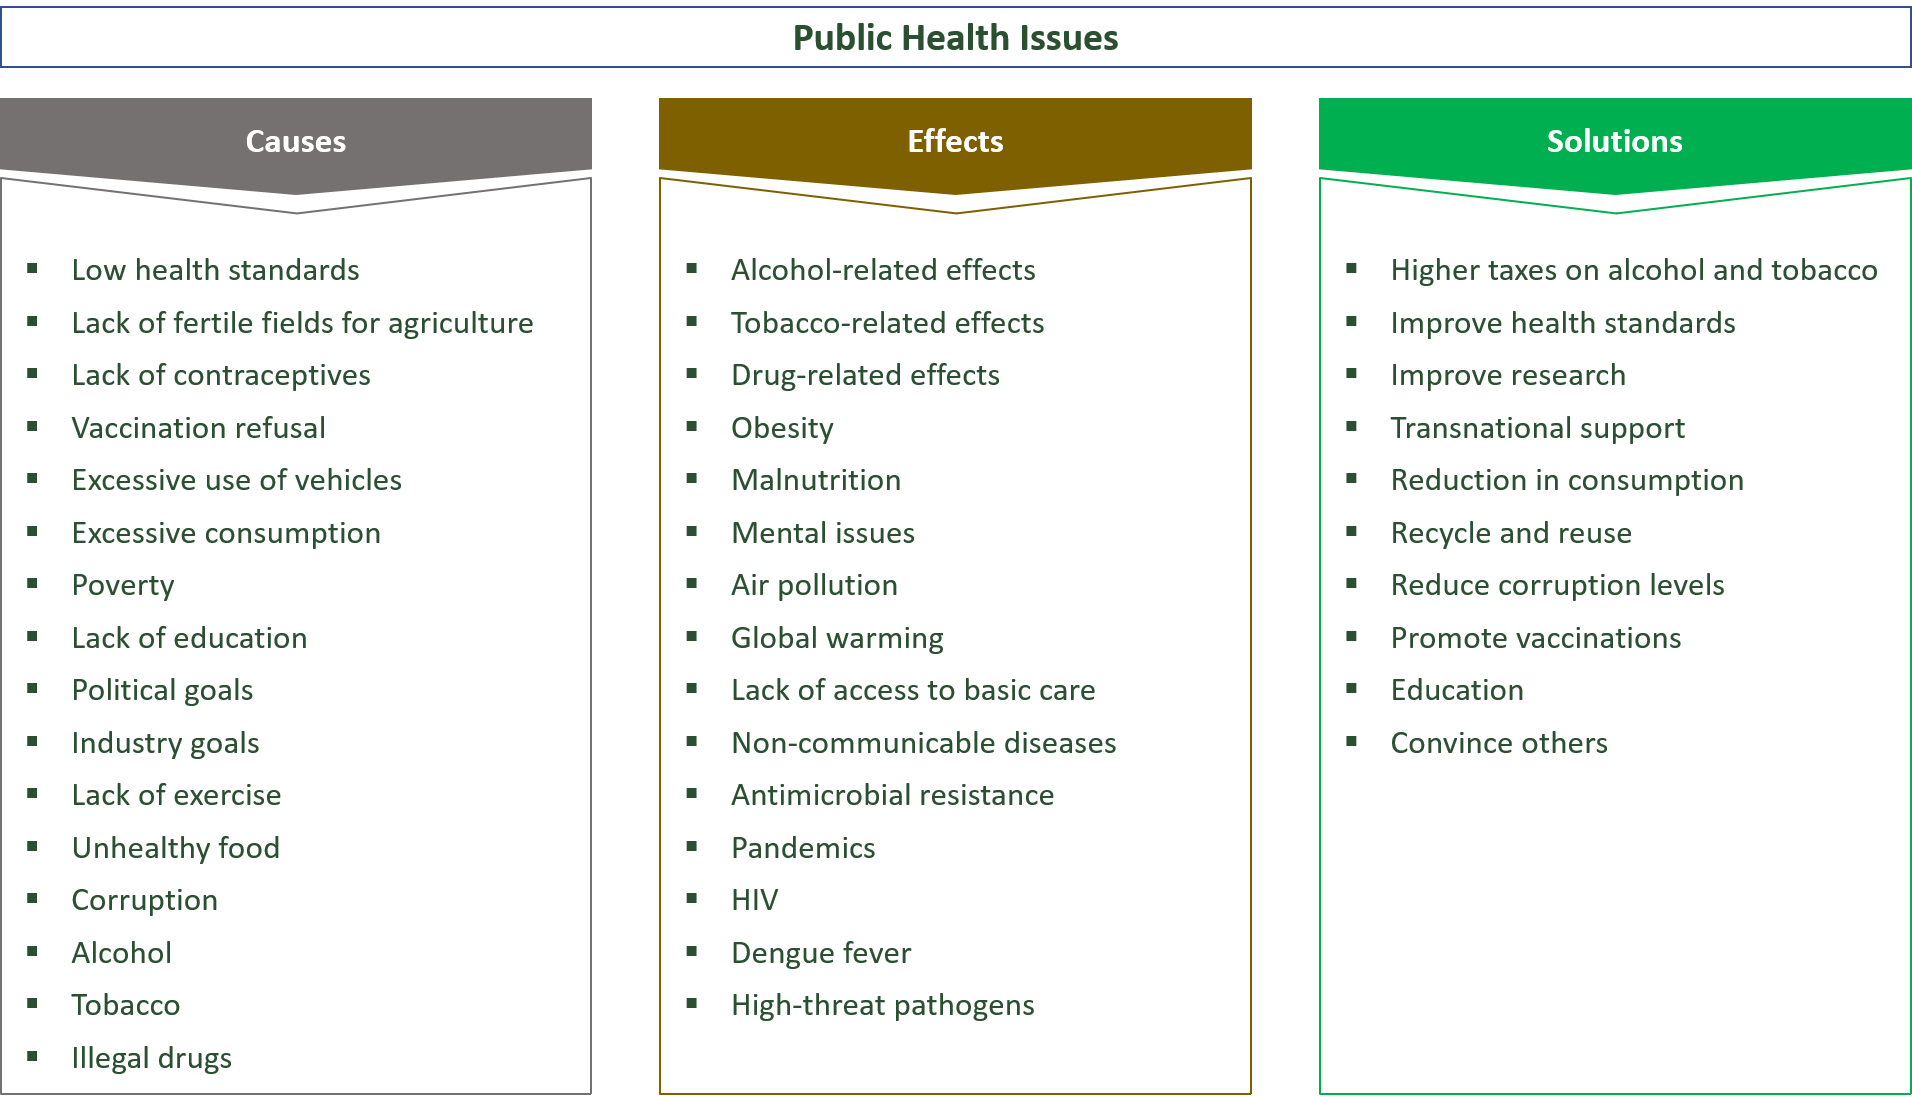 causes, effects and solutions for public health problems